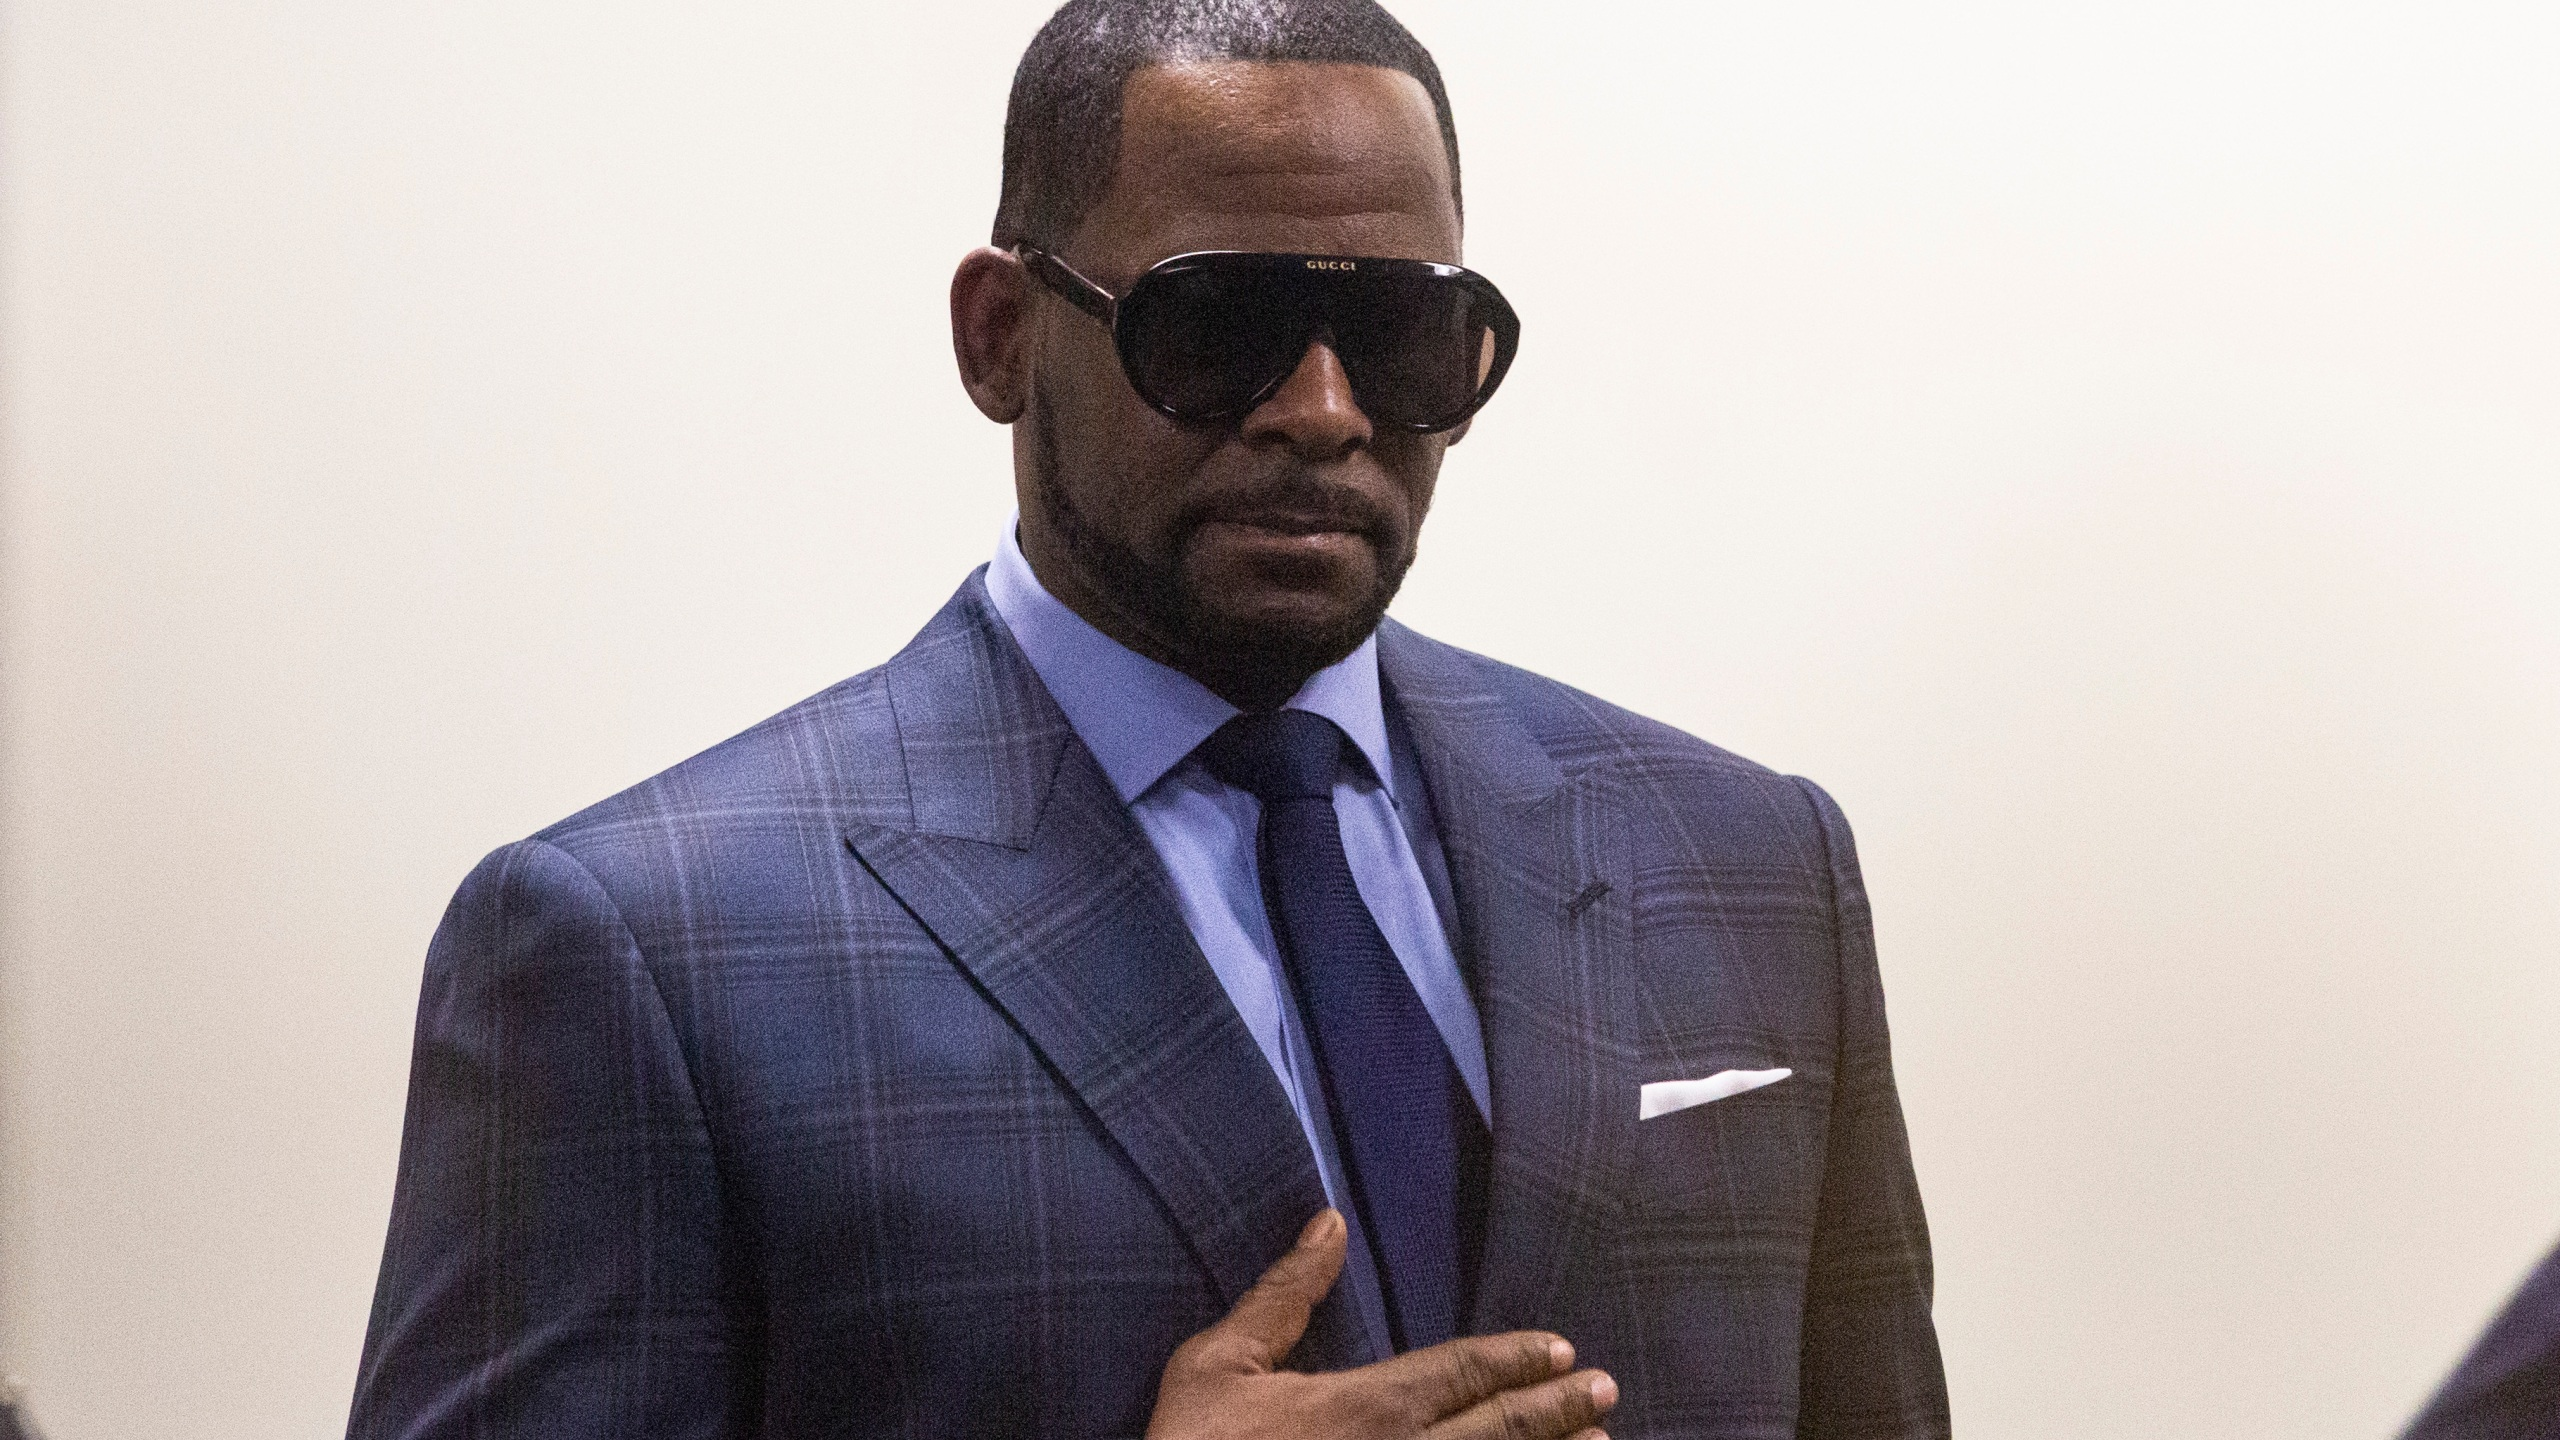 R_Kelly_Investigations_56295-159532.jpg42394373